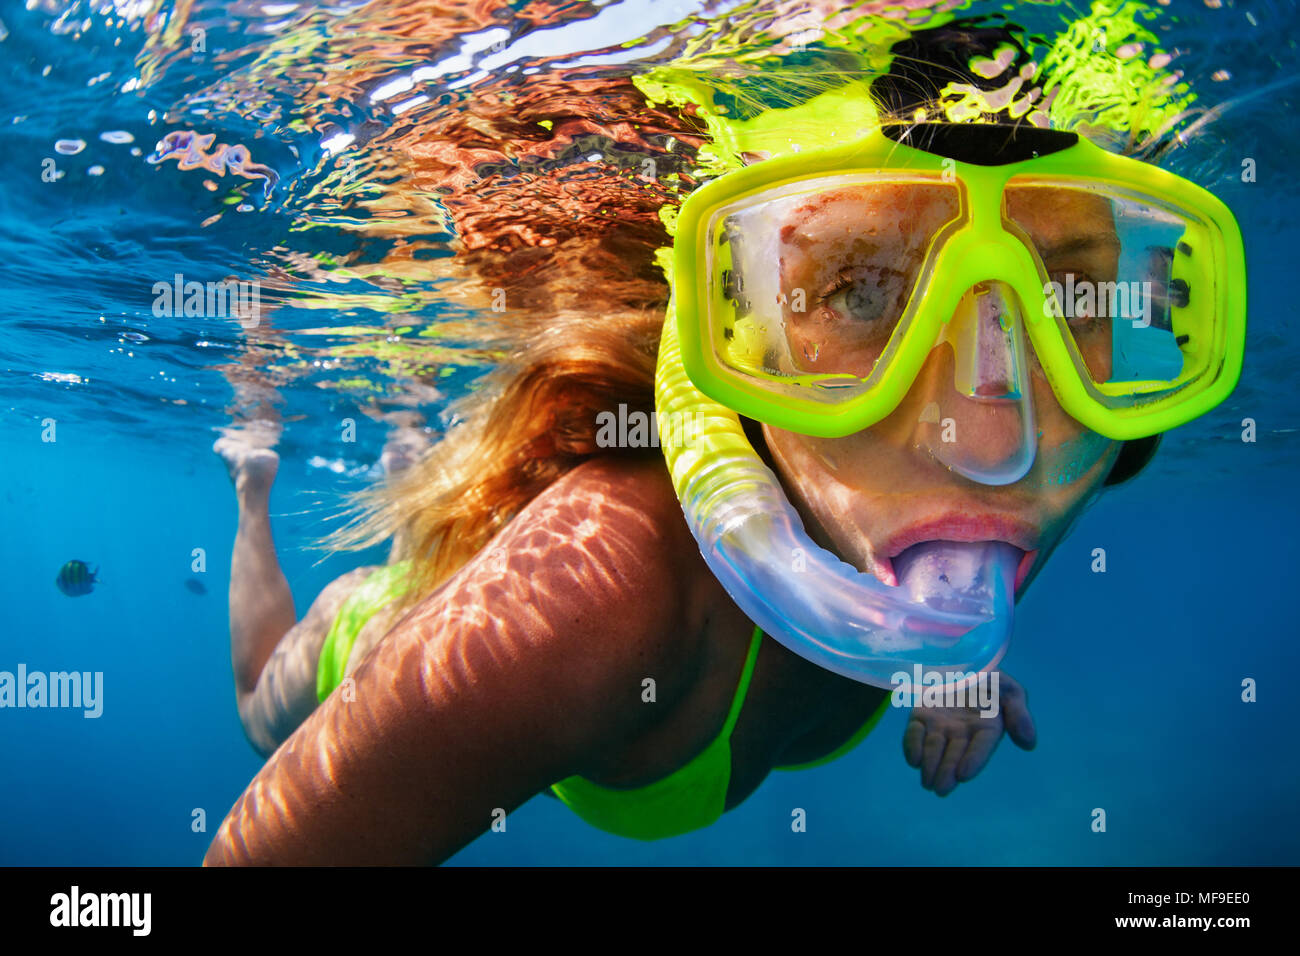 Happy girl in snorkeling mask dive underwater with tropical fishes in coral reef sea pool. Travel lifestyle, water sports, outdoor adventure, swimming - Stock Image